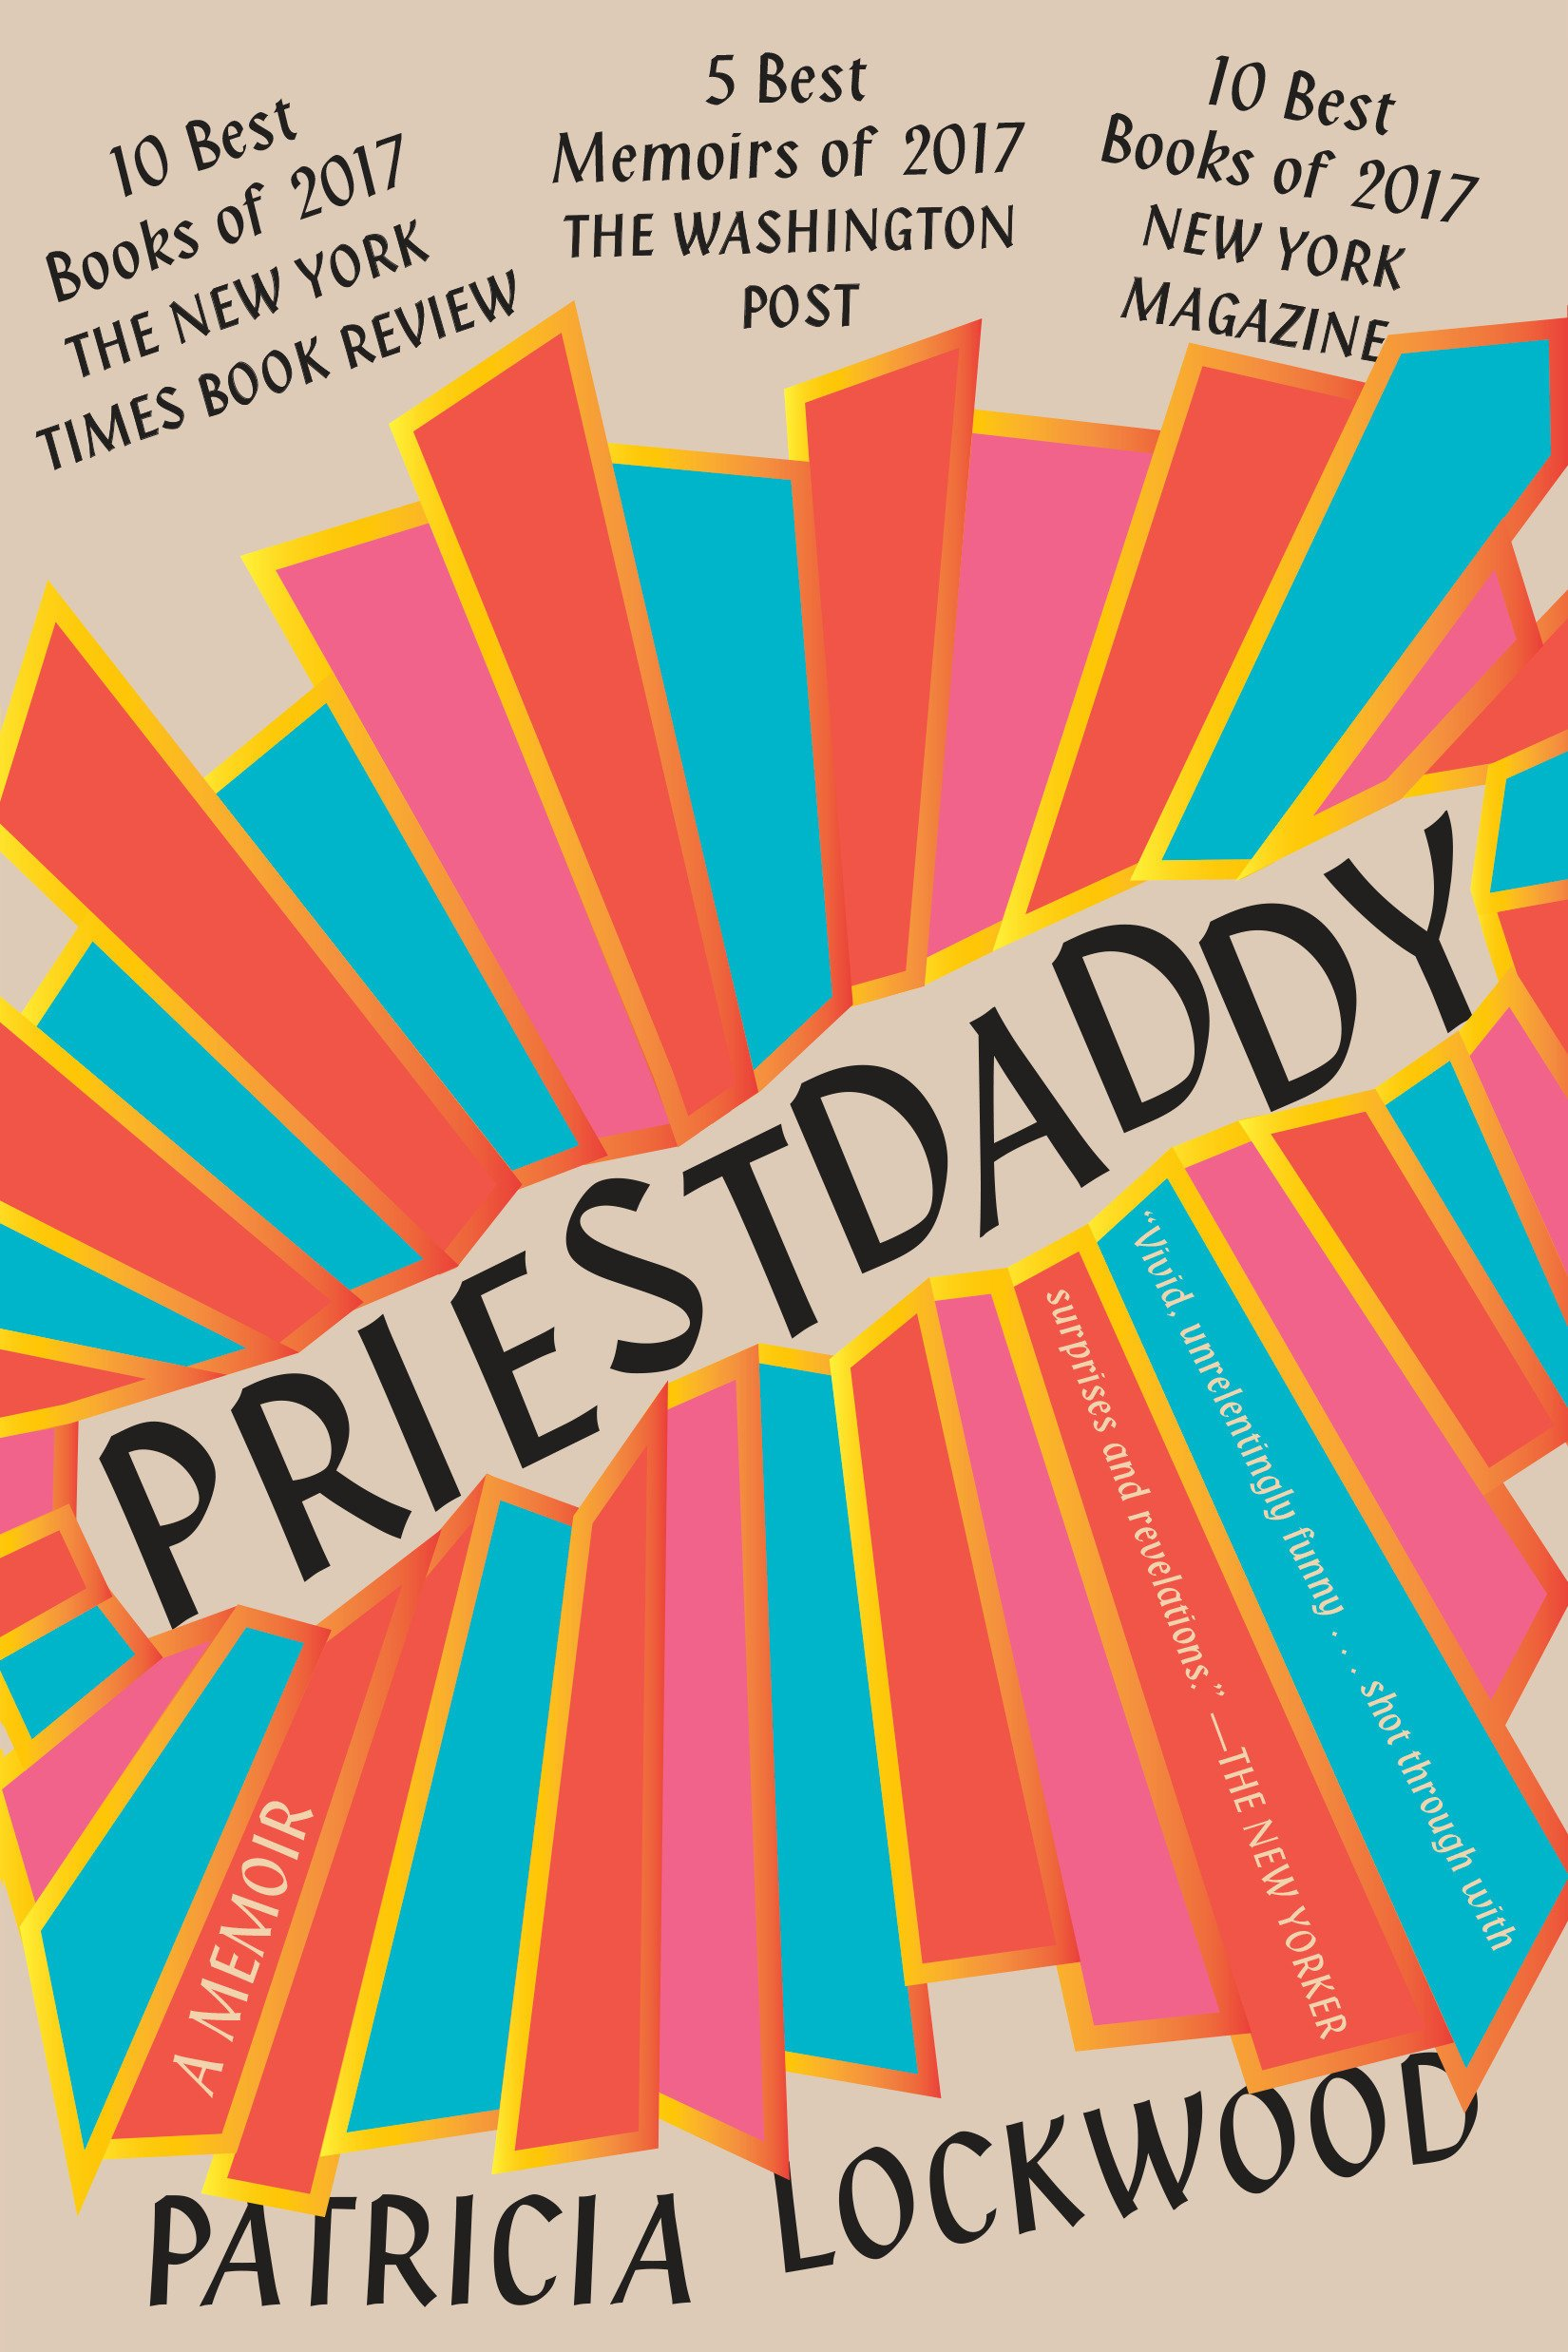 Priestdaddy: A Memoir: Patricia Lockwood: 9780399573262: Amazon.com: Books